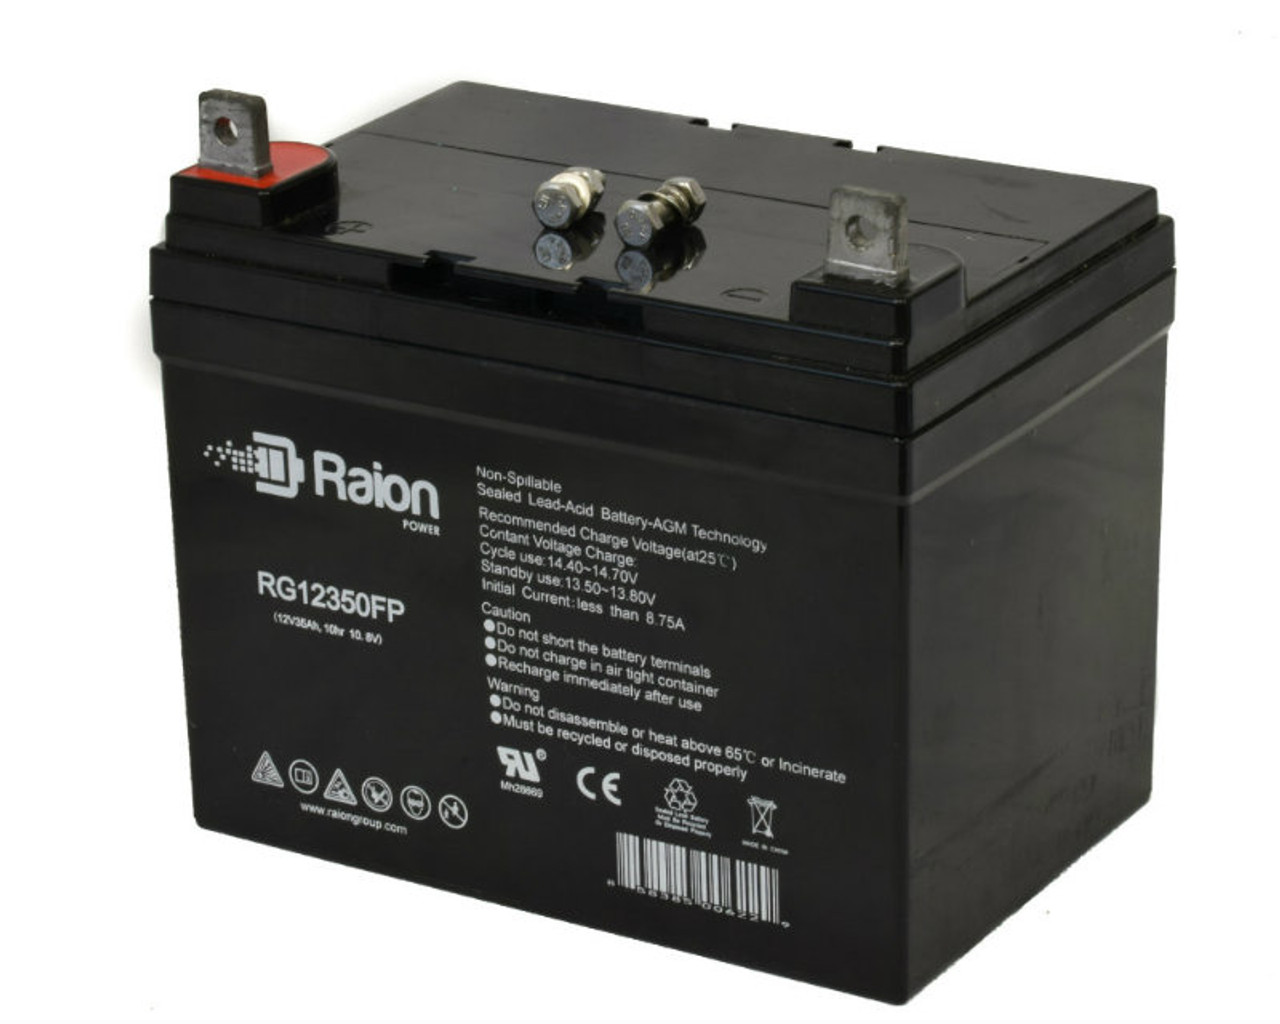 RG12350FP Sealed Lead Acid Battery Pack For Drive Medical Cirrus Plus EC Mobility Scooter